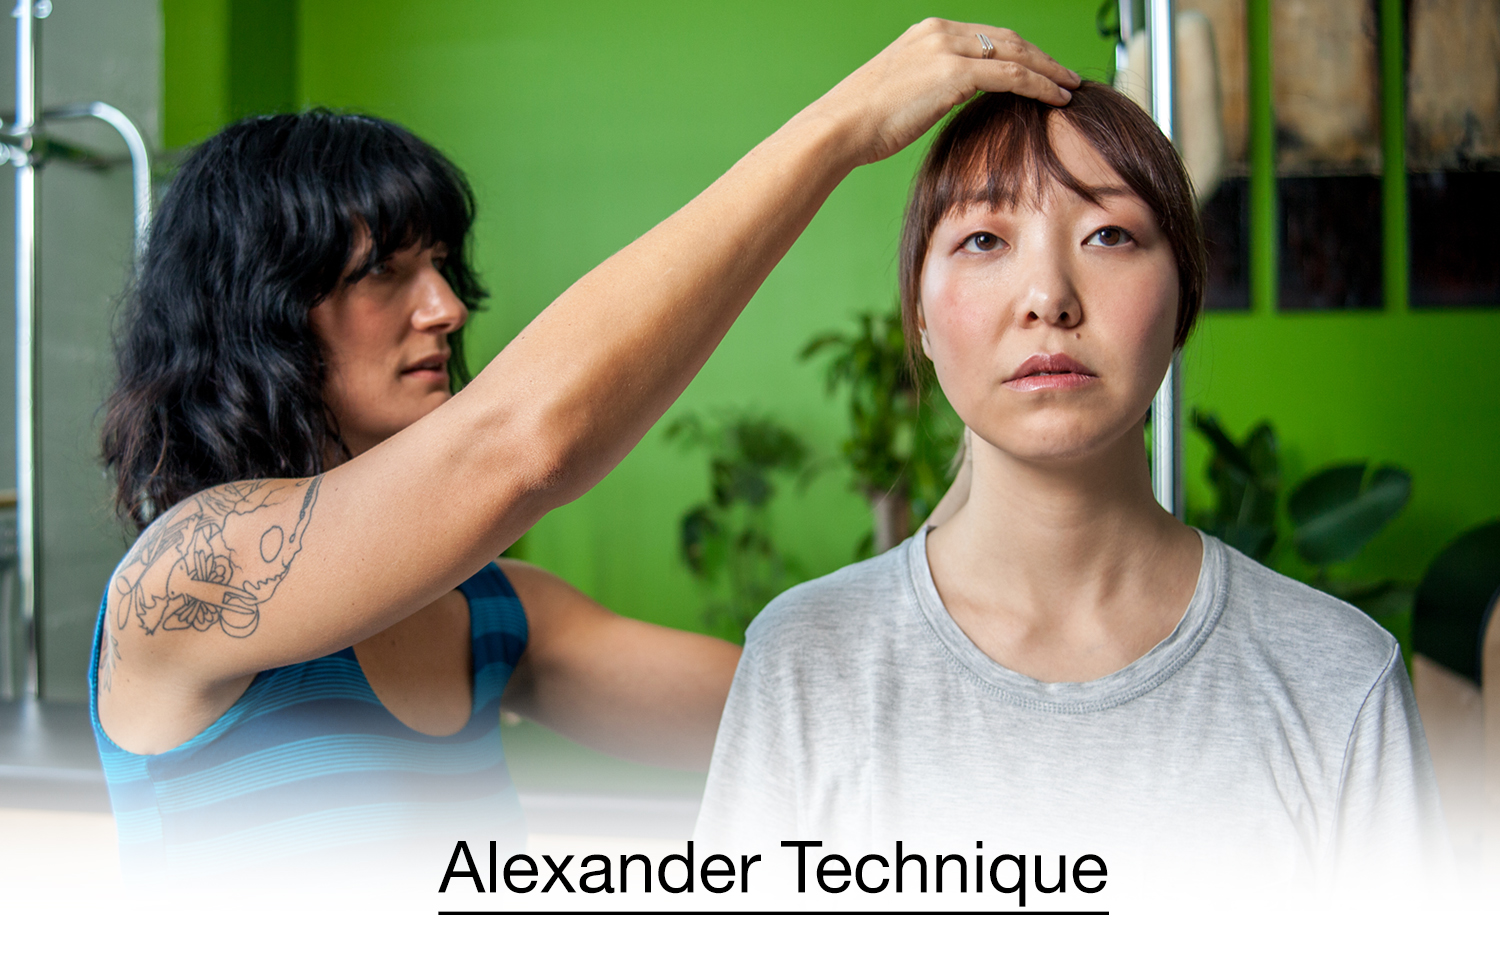 The Alexander Technique™ restores your body's balance and posture to it's natural state. By rebuilding how you walk, sit and laydown, you will re-engage with the world, and re-rember how it feels to be fully aligned. Check out our  schedule page  to sign up for a session!